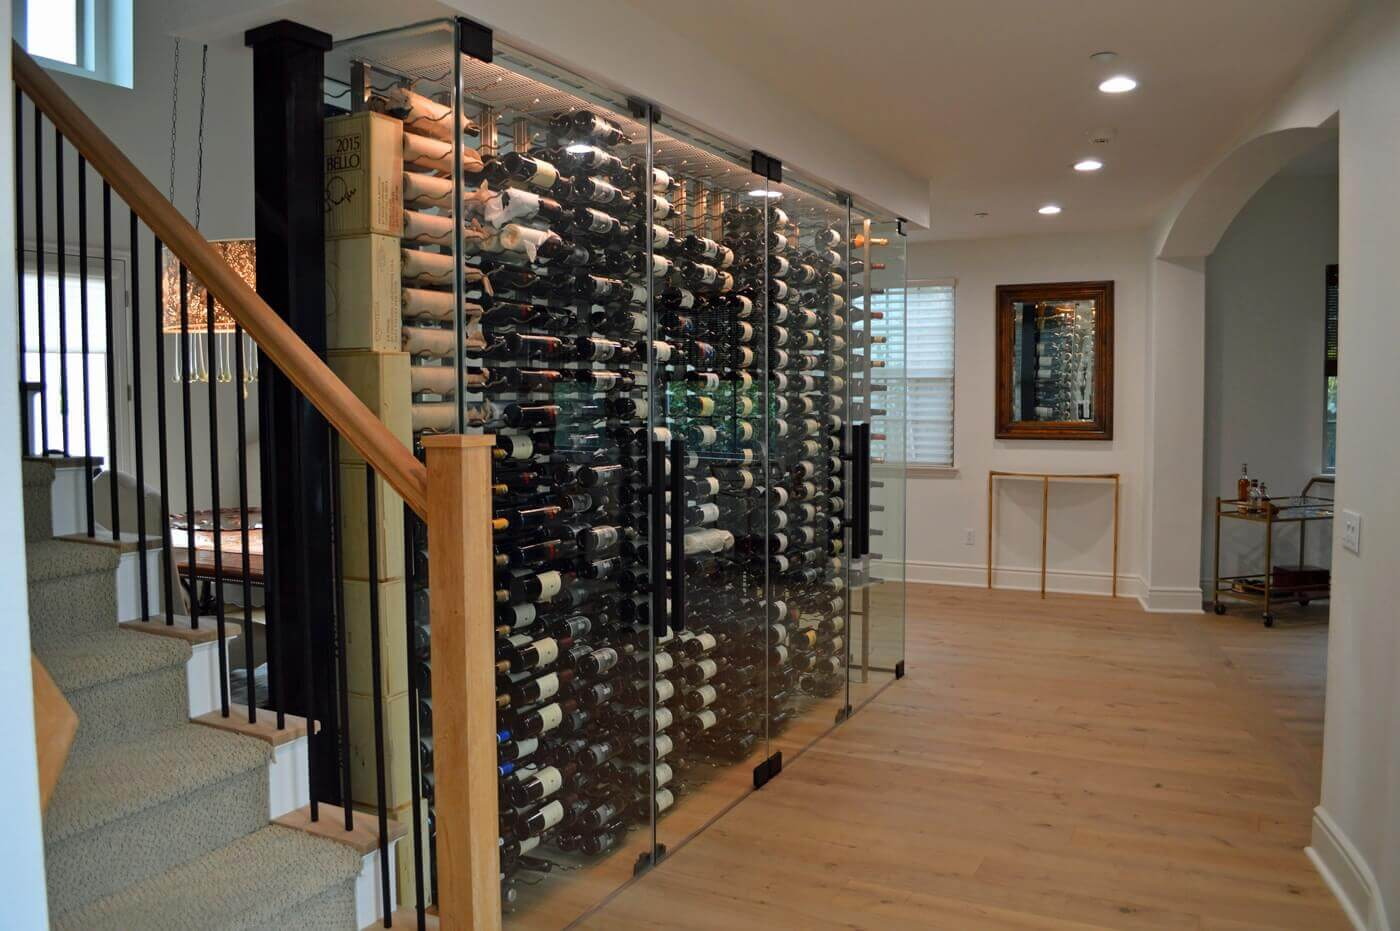 The wine cellar covers minimal space but can store a large number of wine bottles.